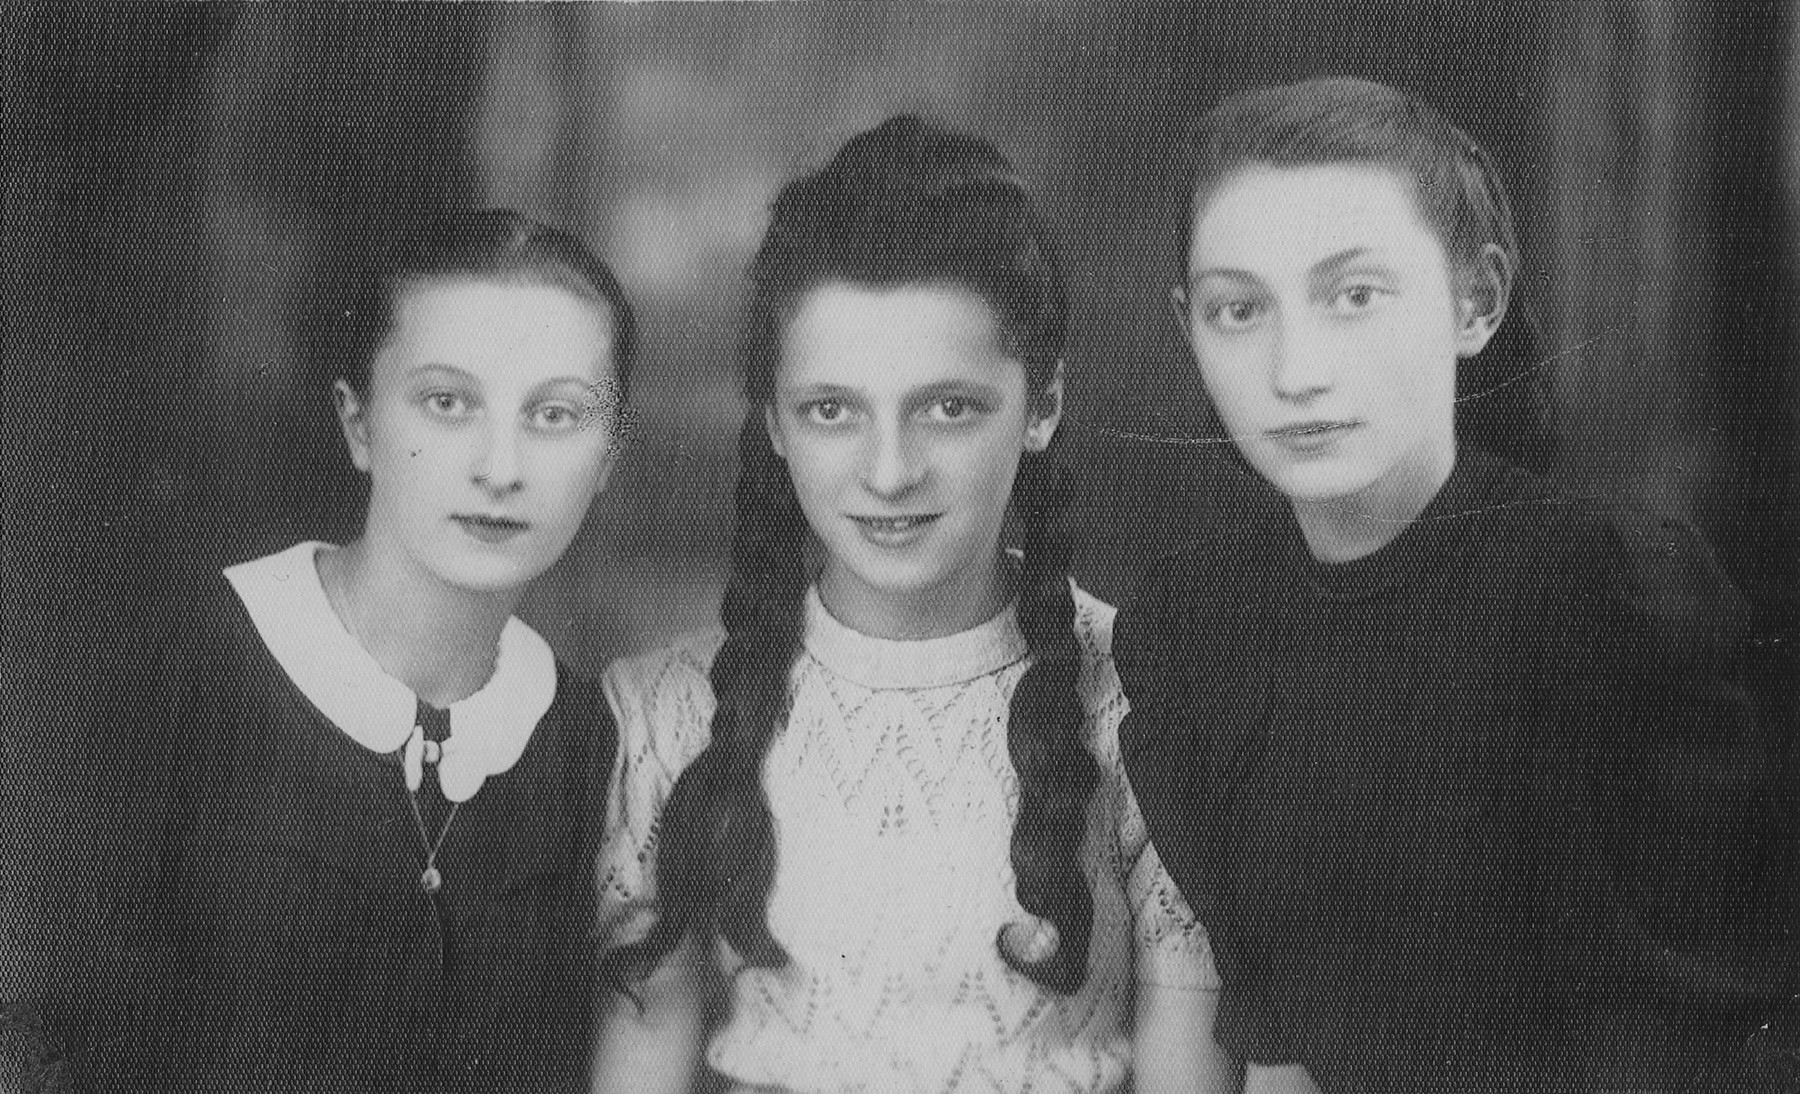 Portrait of three young Jewish women.    From left: Pola Rozen (the donor's niece); Ewa Strzegowska and Frania Magierkiewicz.  In August 1943 all three were deported to Auschwitz and perished there.